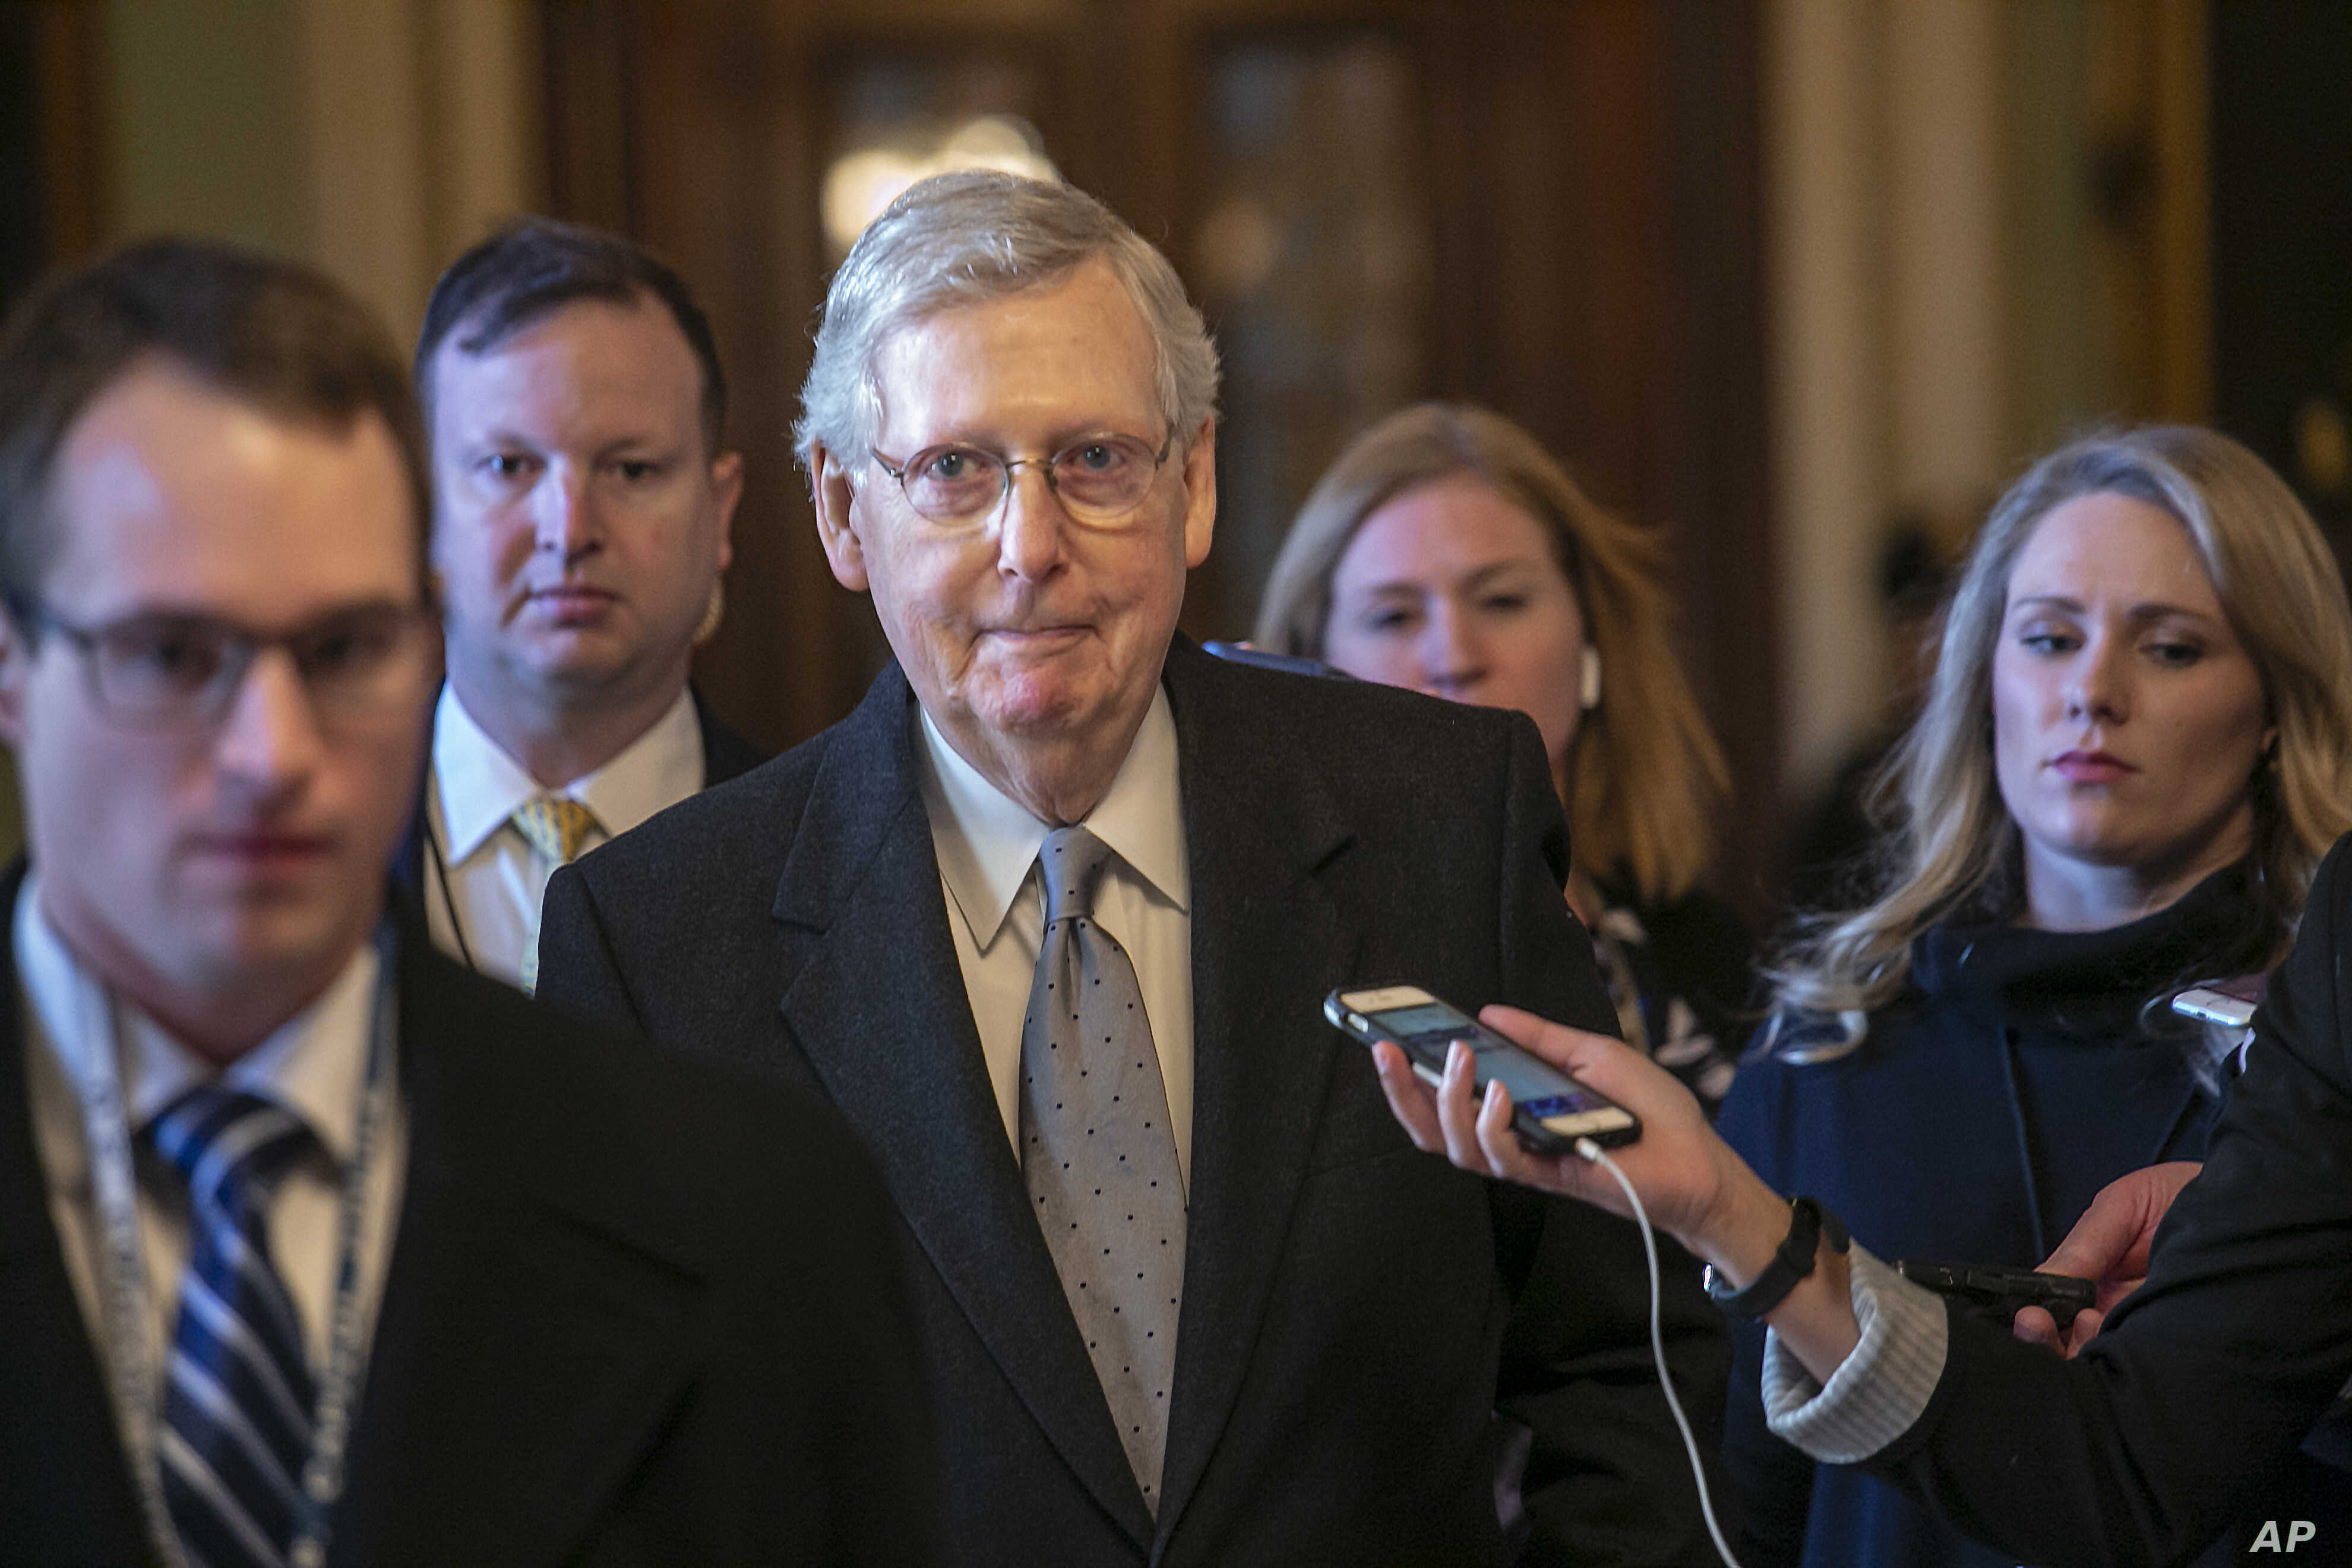 Senate Majority Leader Mitch McConnell, R-Ky., leaves the chamber after speaking about his plan to move a 1,300-page spending measure, which includes $5.7 billion to fund President Donald Trump's proposed wall along the U.S.-Mexico border.